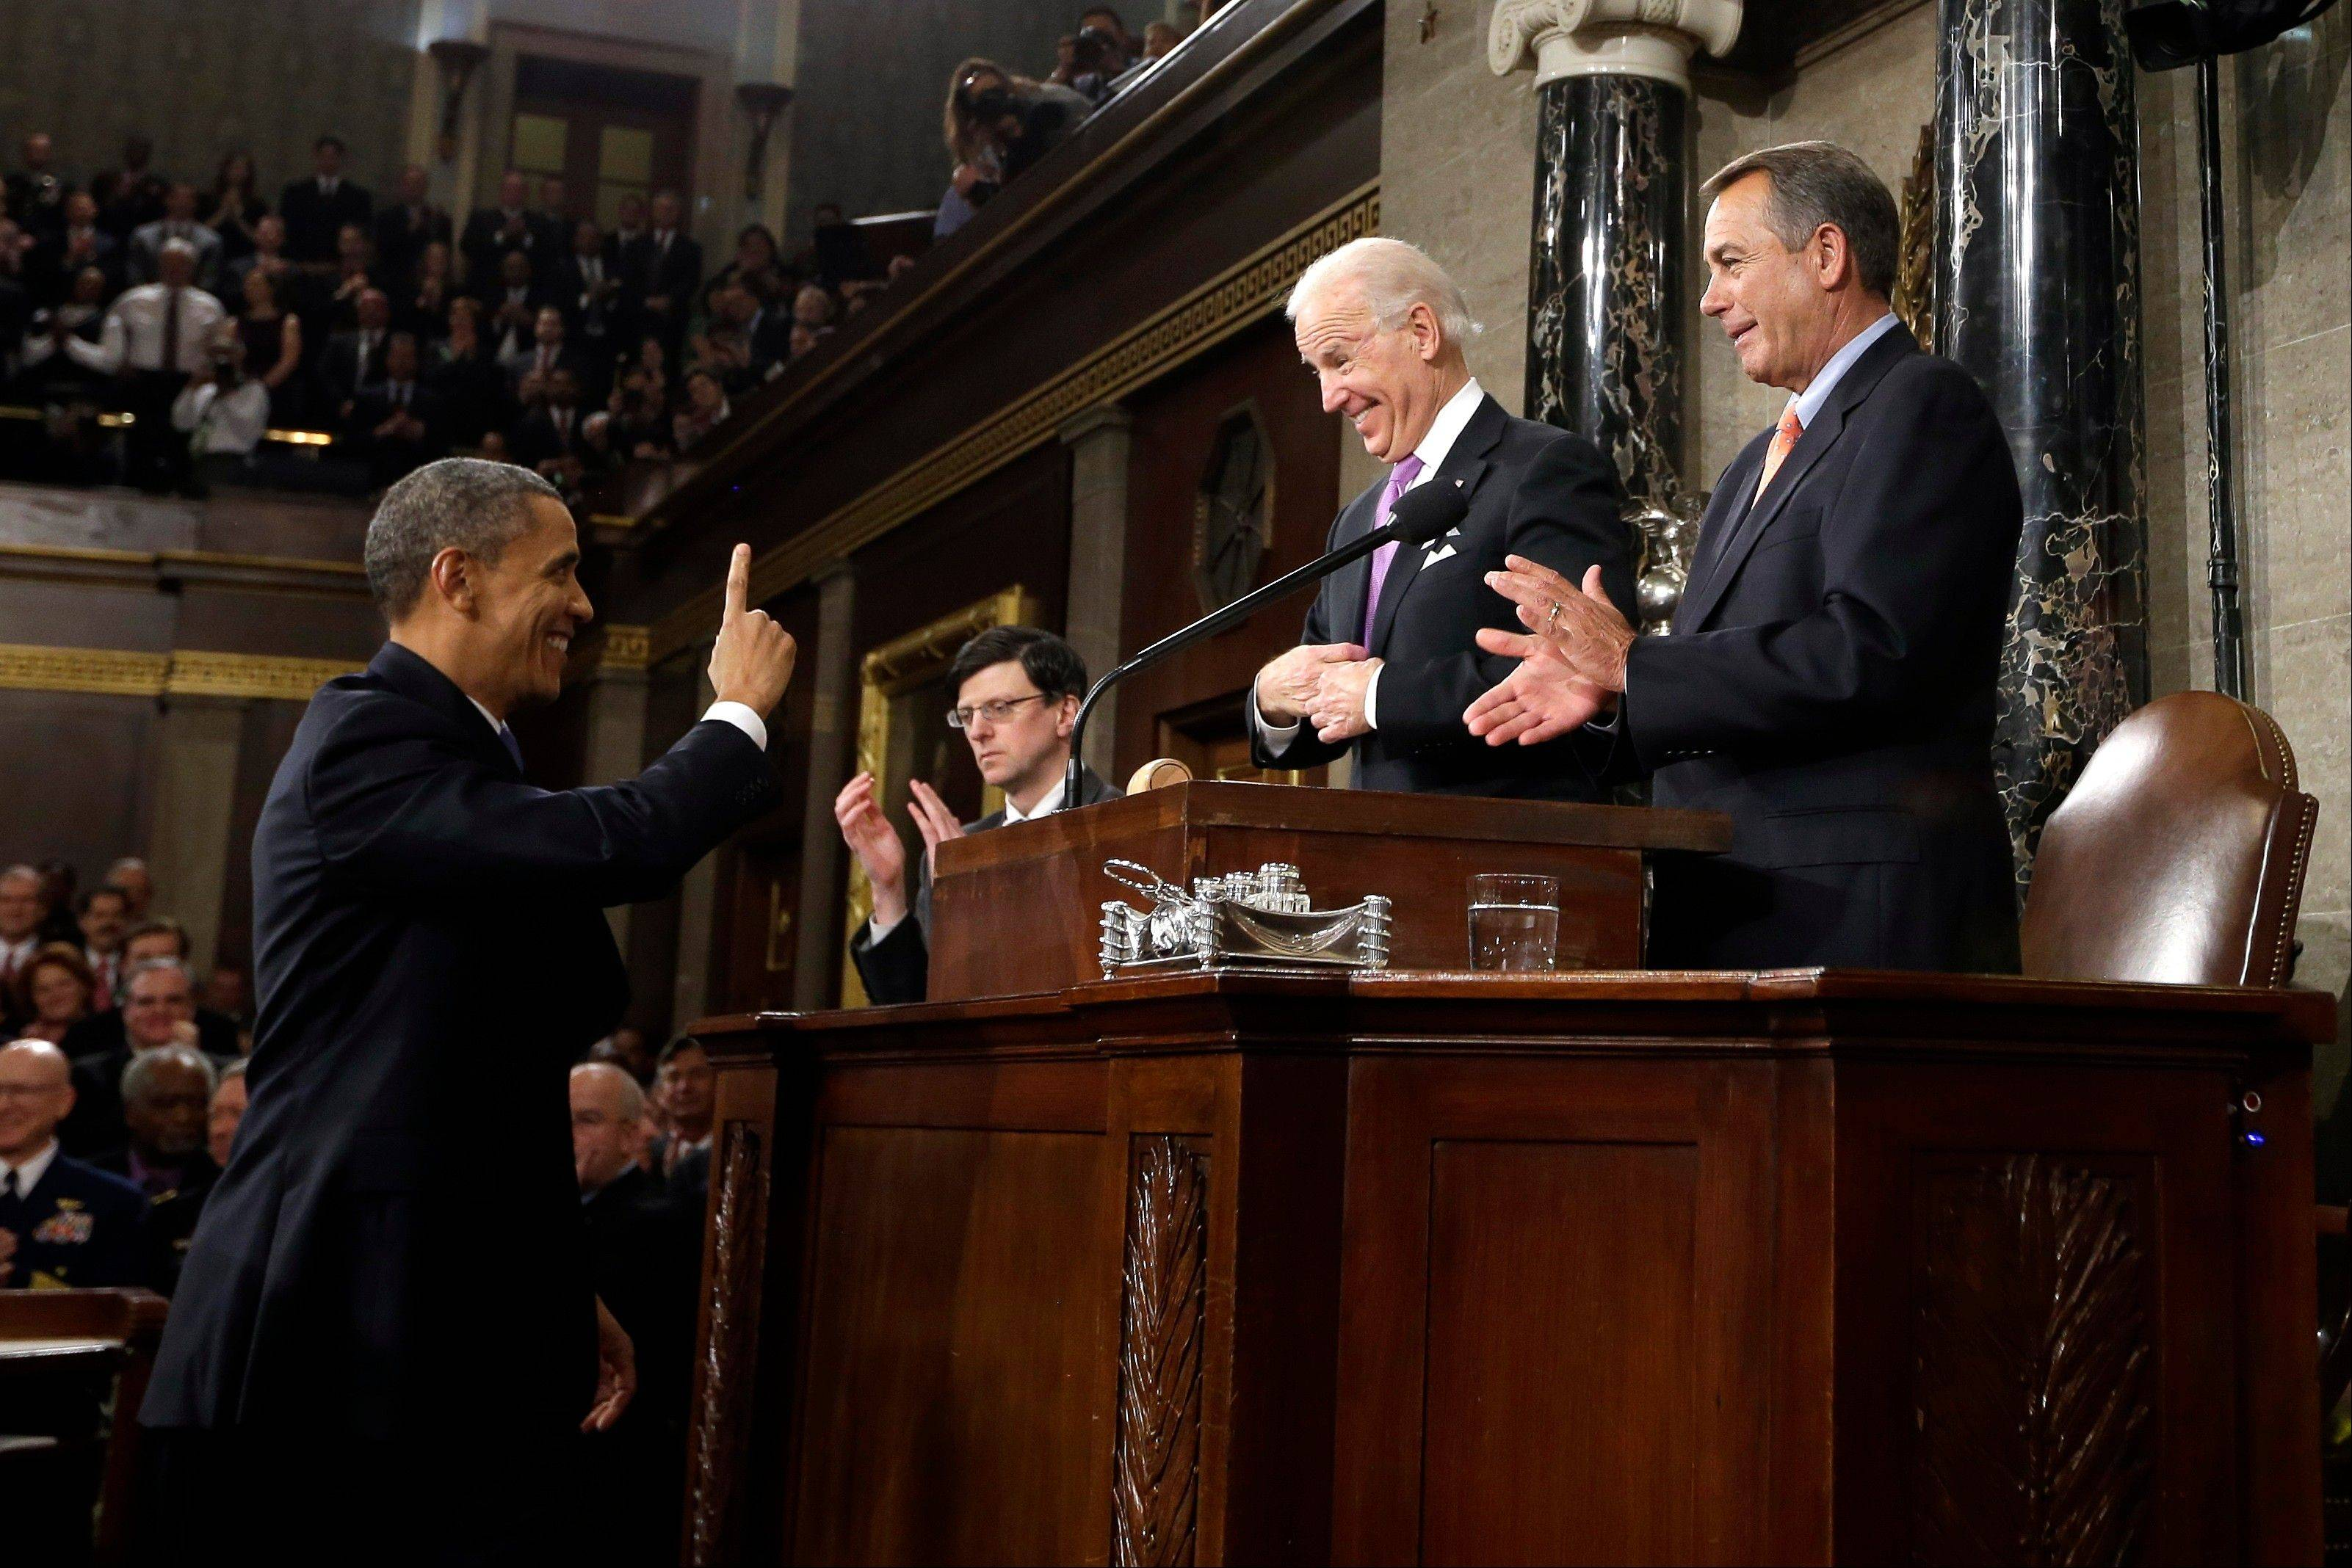 President Barack Obama gestures toward Vice President Joe Biden and House Speaker John Boehner of Ohio before giving his State of the Union address during a joint session of Congress on Capitol Hill in Washington Tuesday.